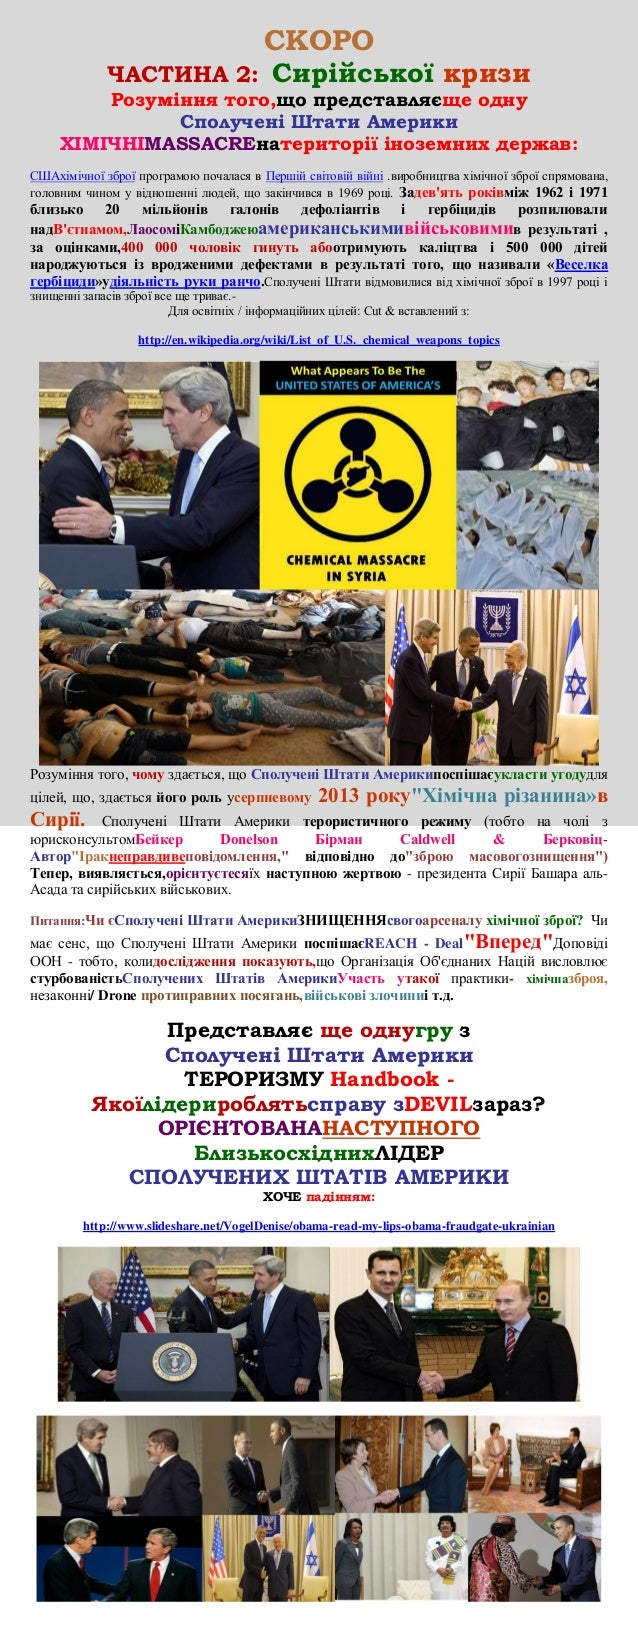 Syria crisis   (united states of america) chemical weapons attack (ukrainian)